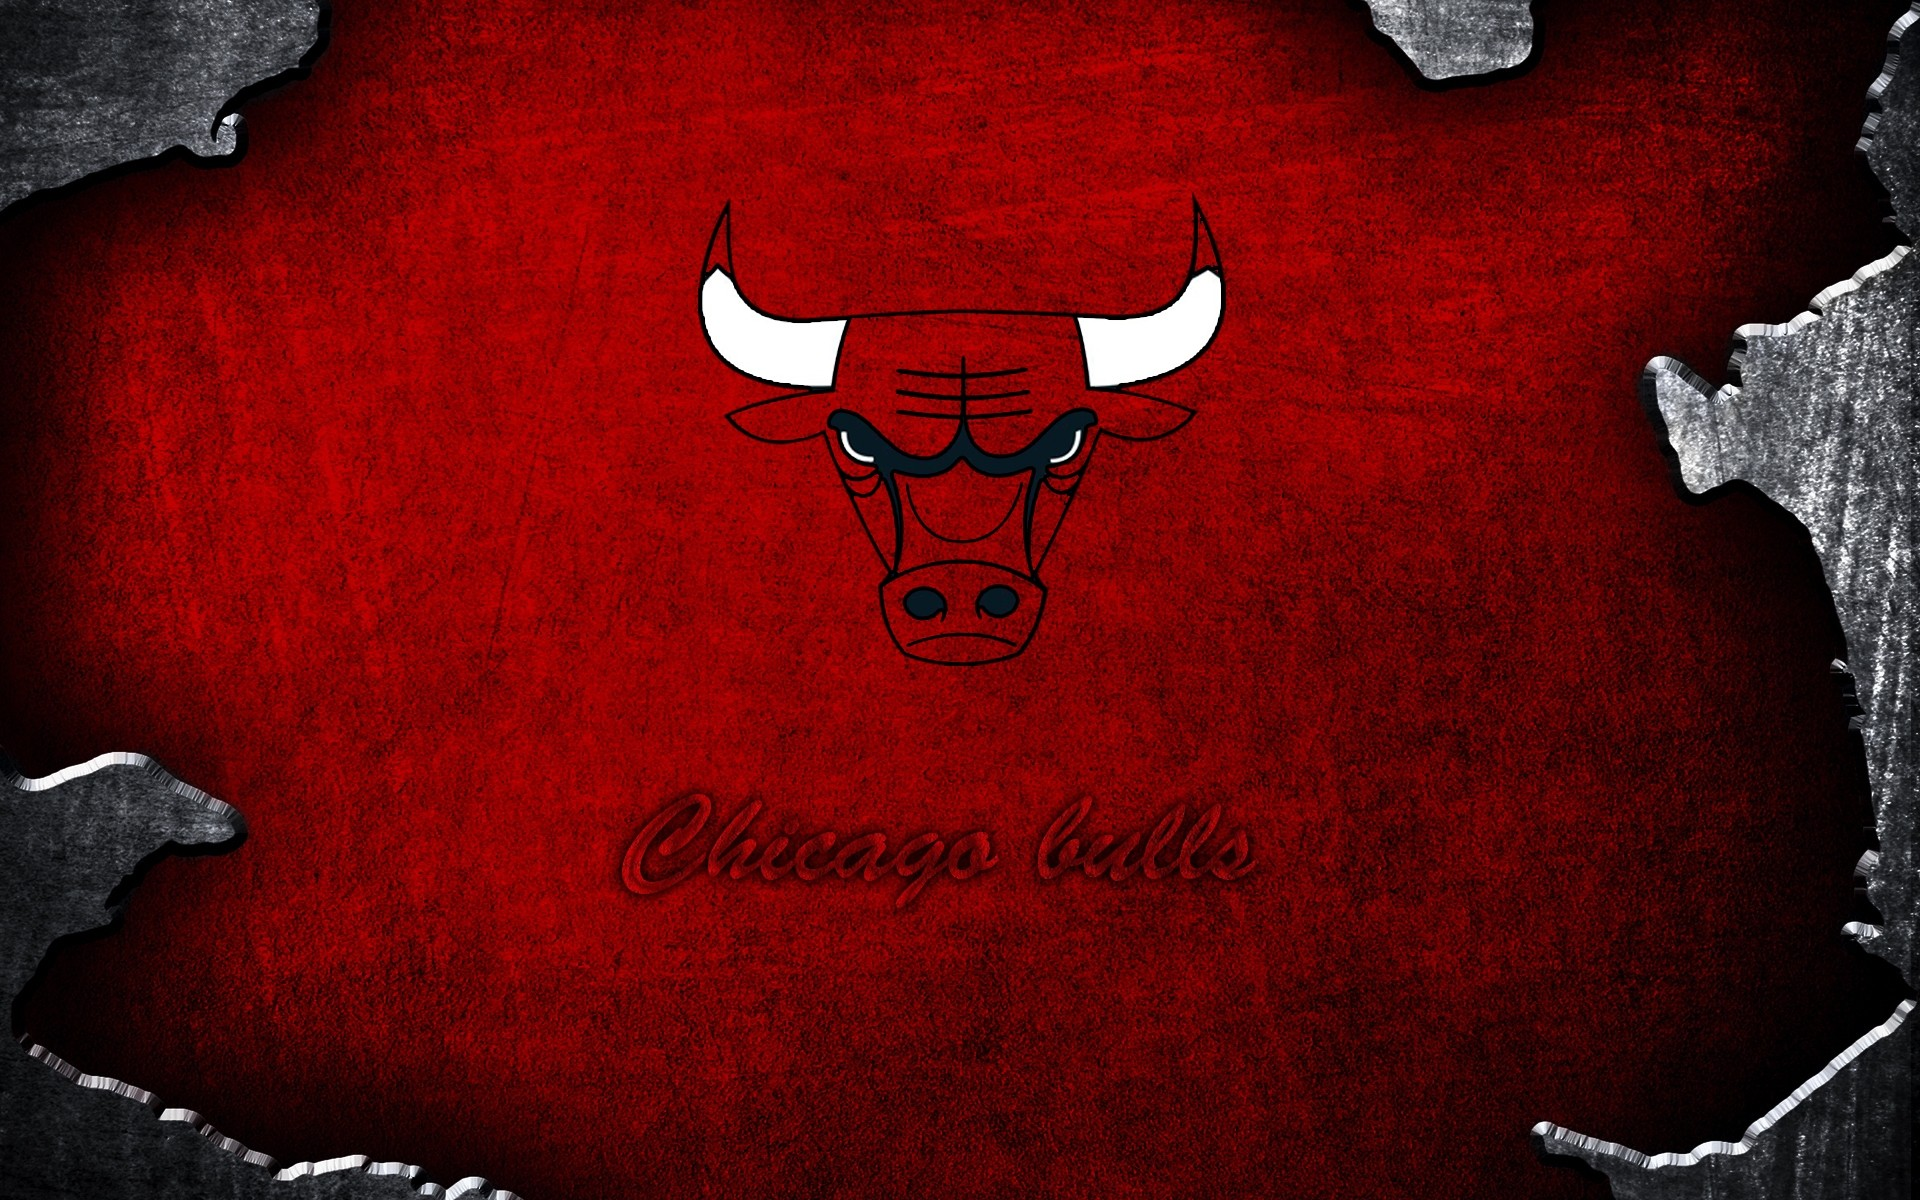 Chicago Bulls Grunge IPhone Wallpapers For Free